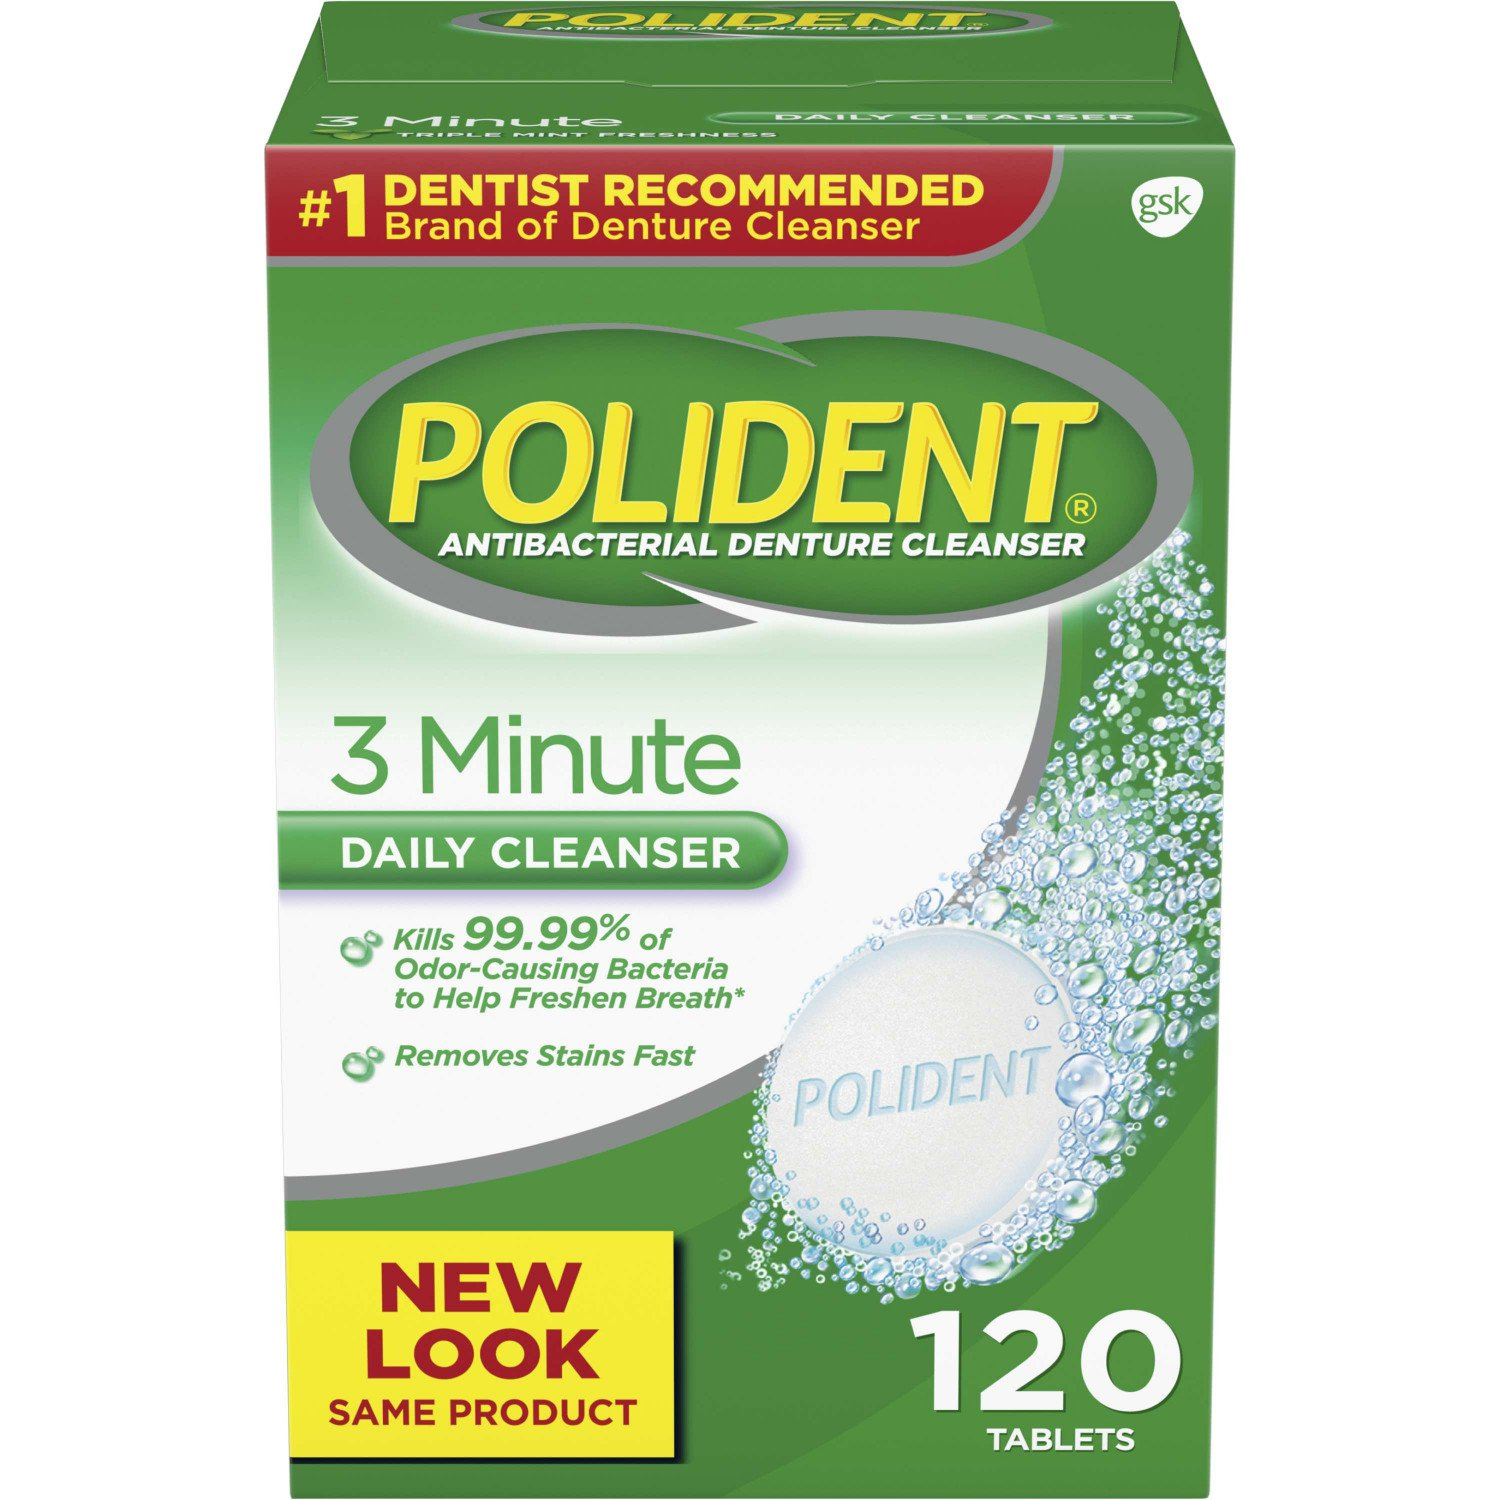 Polident 3 Minute Triple Mint Antibacterial Denture Cleanser Effervescent Tablets, 120 count: Beauty